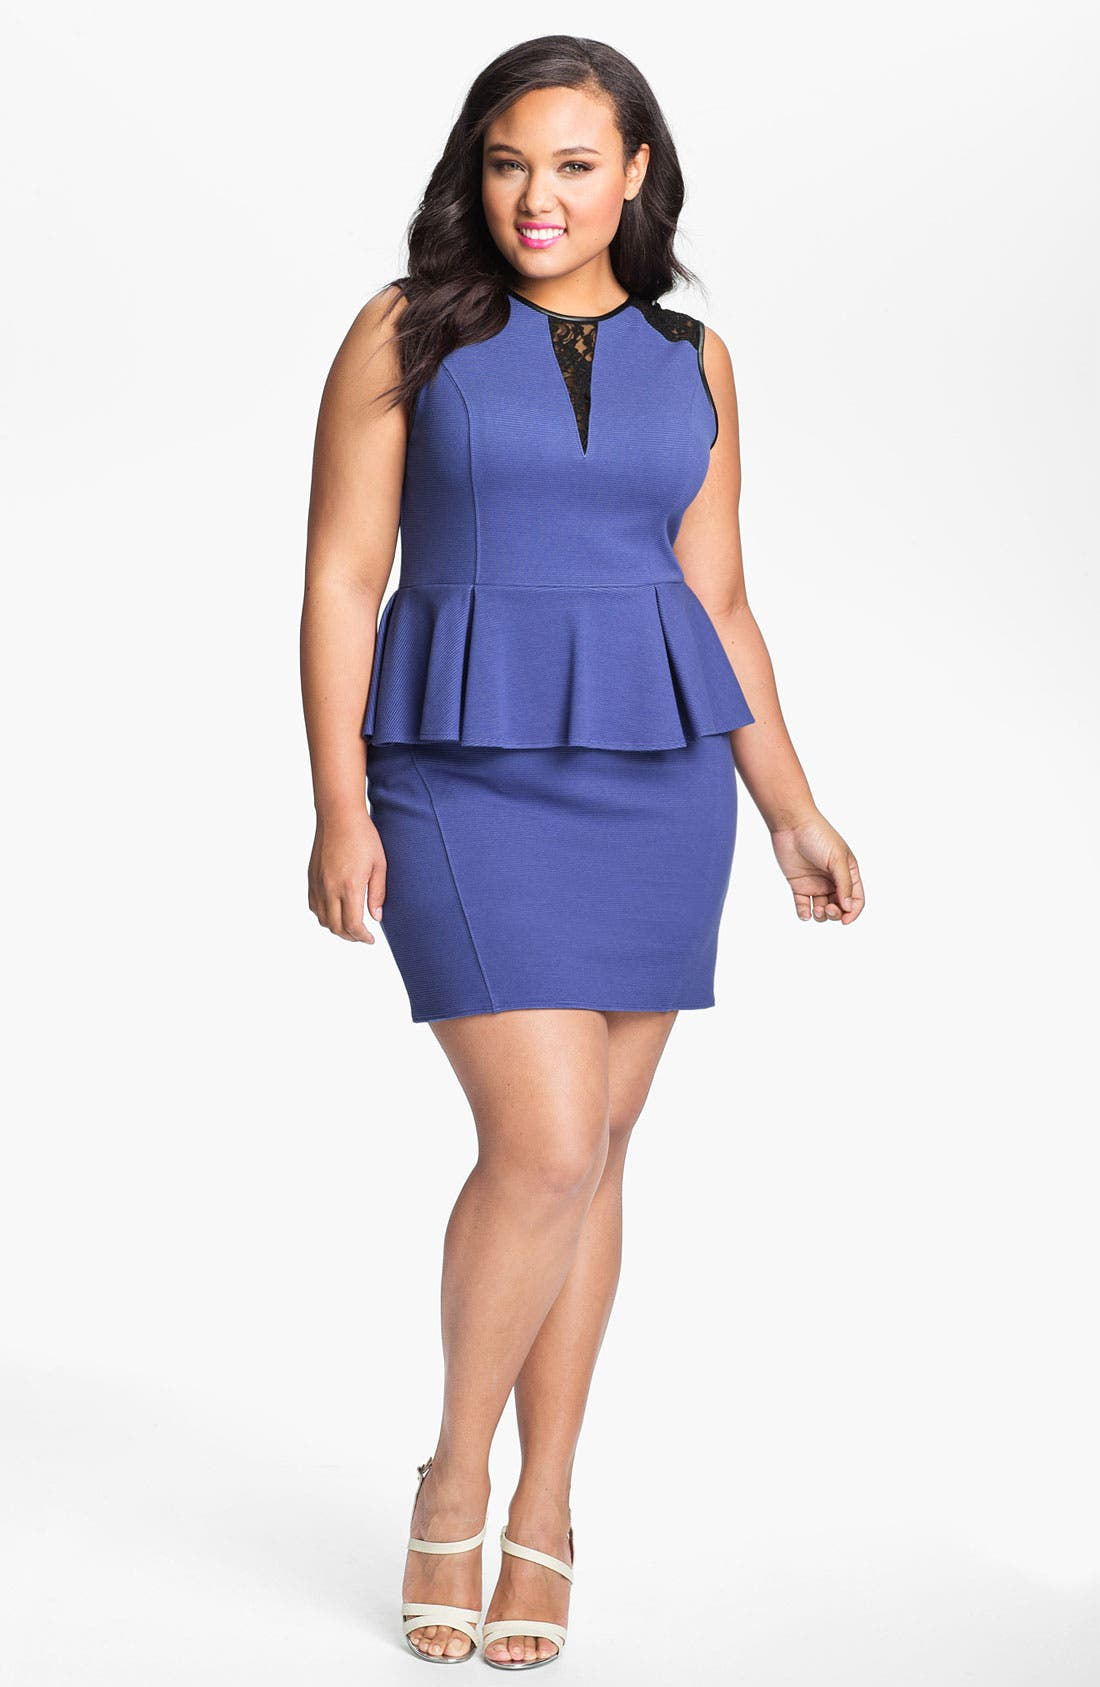 Alternate Image 1 Selected - ABS by Allen Schwartz Lace Inset Peplum Sheath Dress (Plus Size)